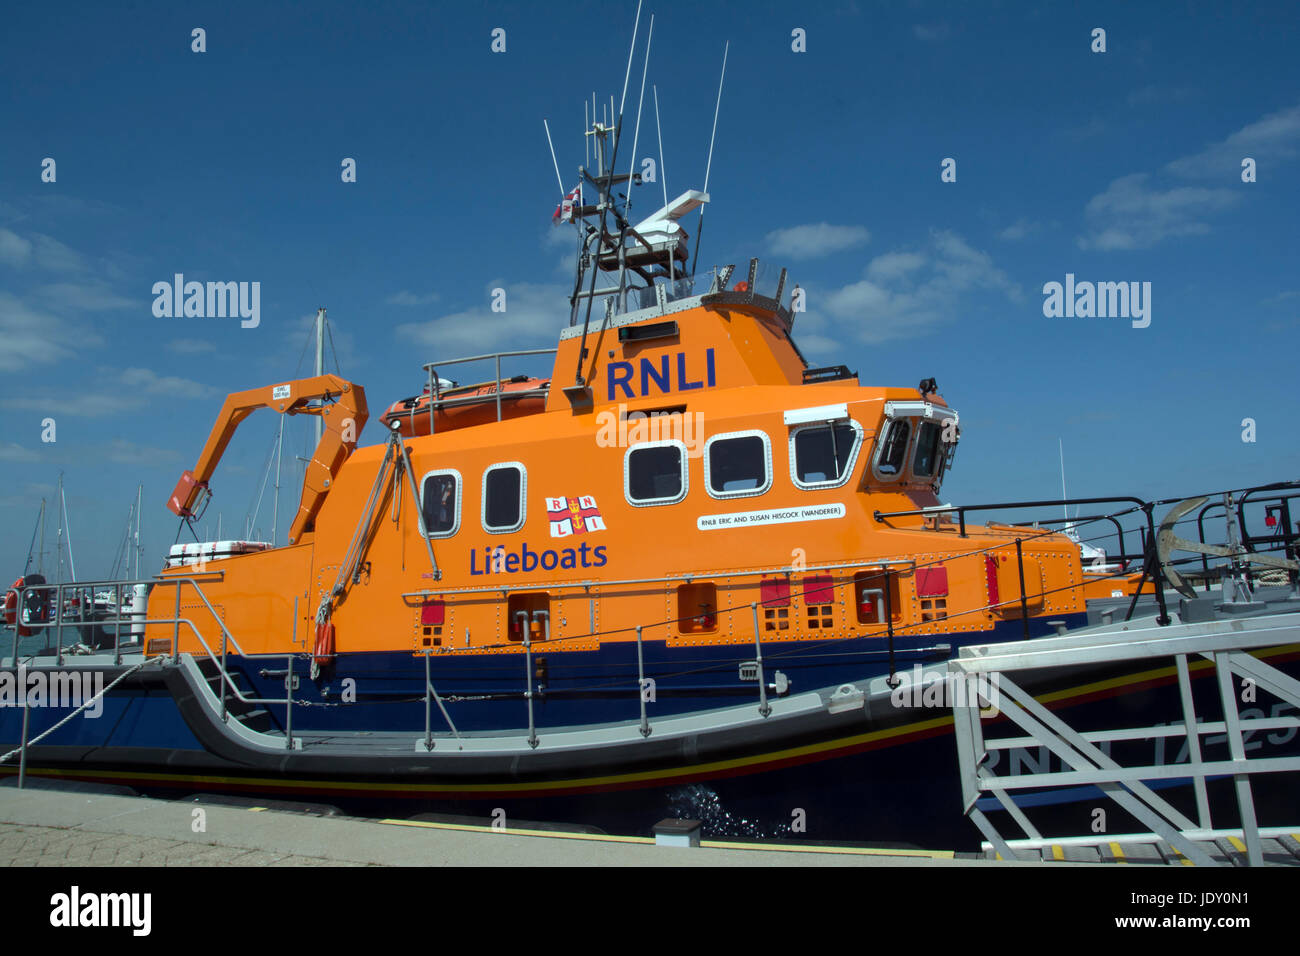 ISLE OF WIGHT; YARMOUTH; THE YARMOUTH LIFEBOAT - Stock Image